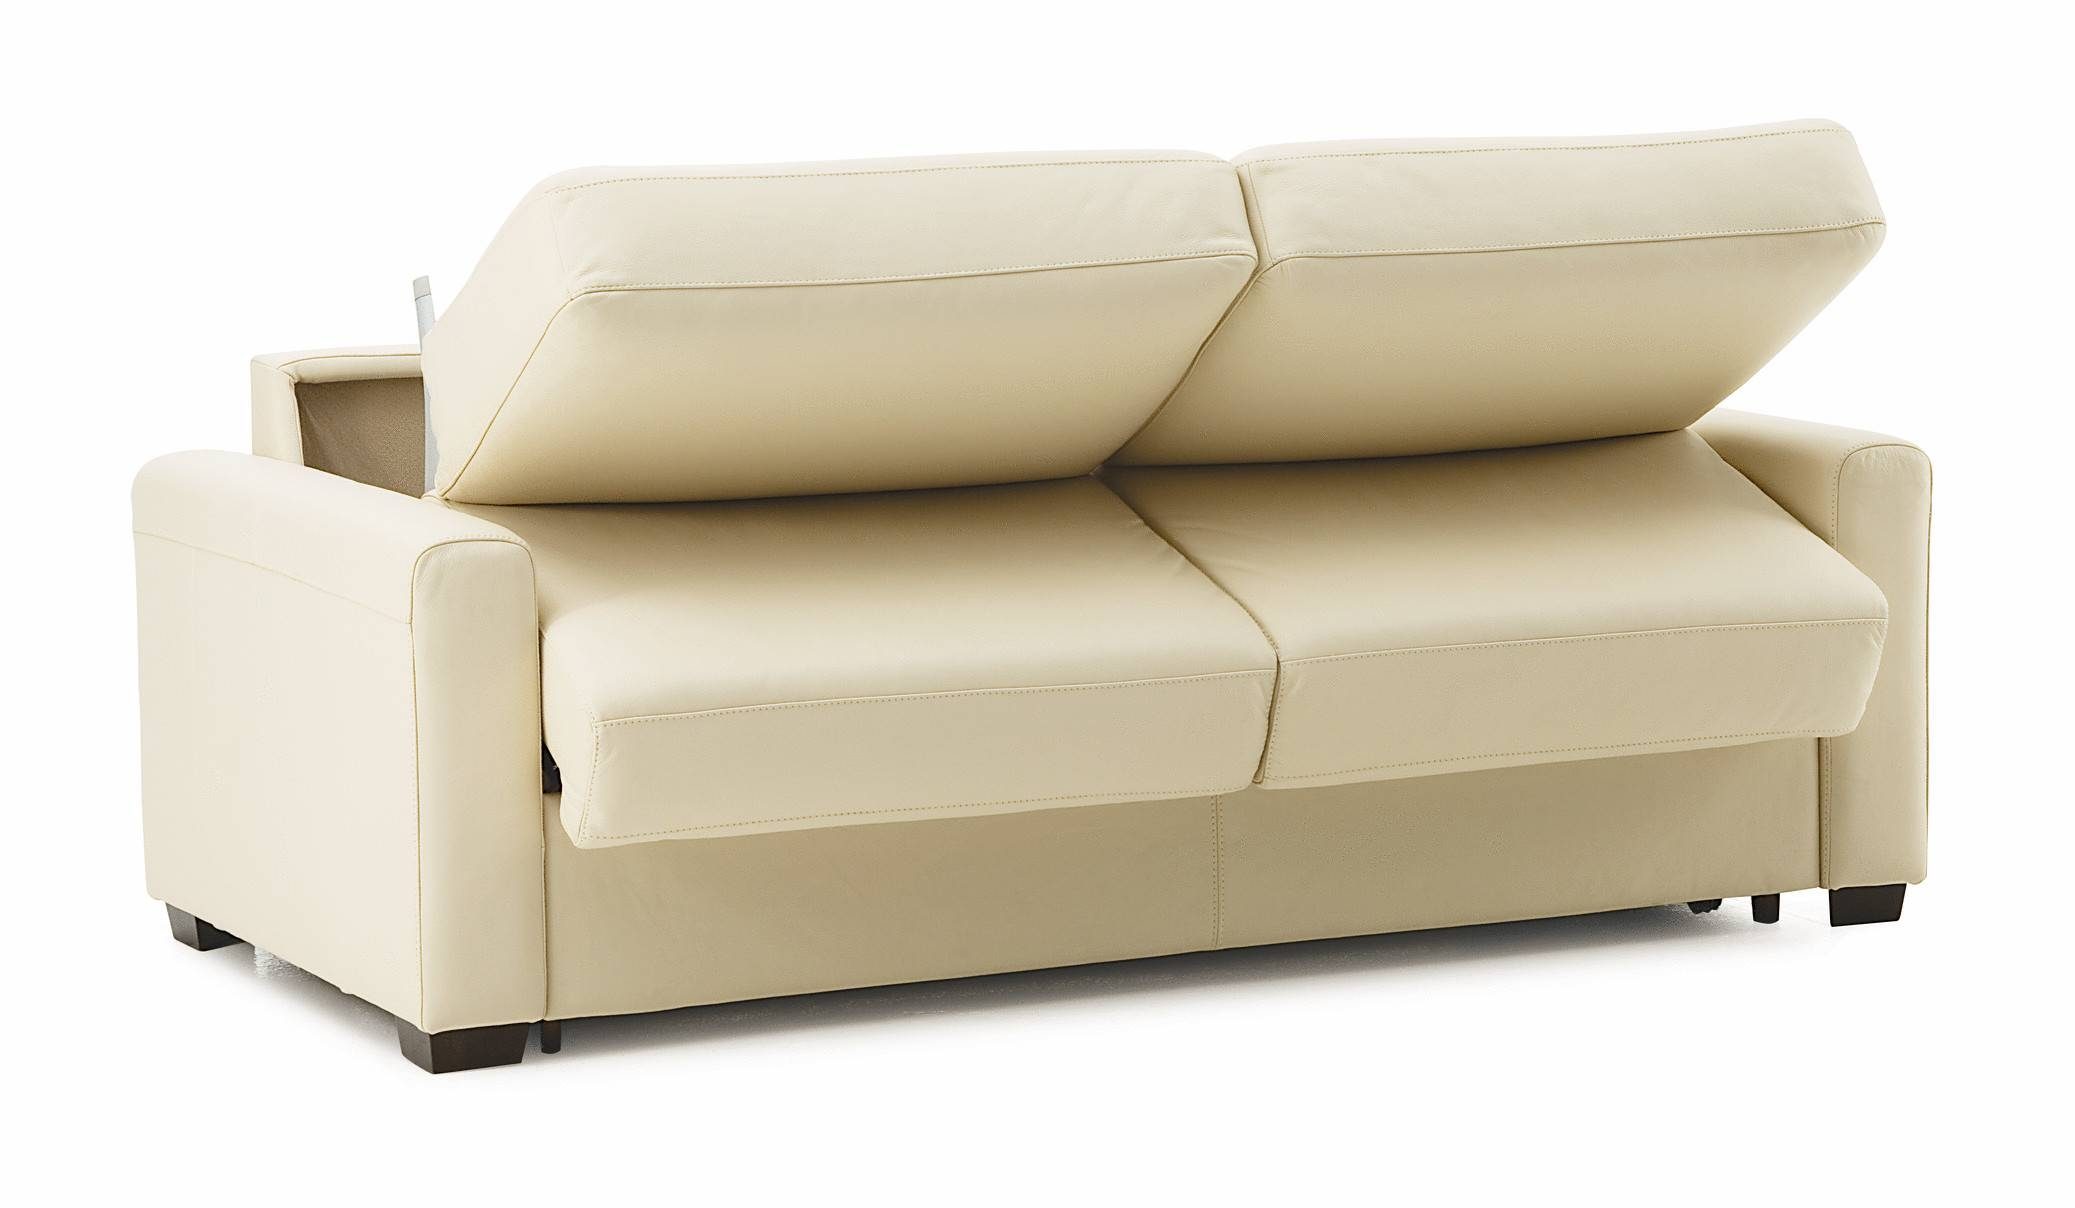 Sleeper Sofa Comfortable And Sleeper Sofas For Small Spaces for Comfortable Convertible Sofas (Image 18 of 30)